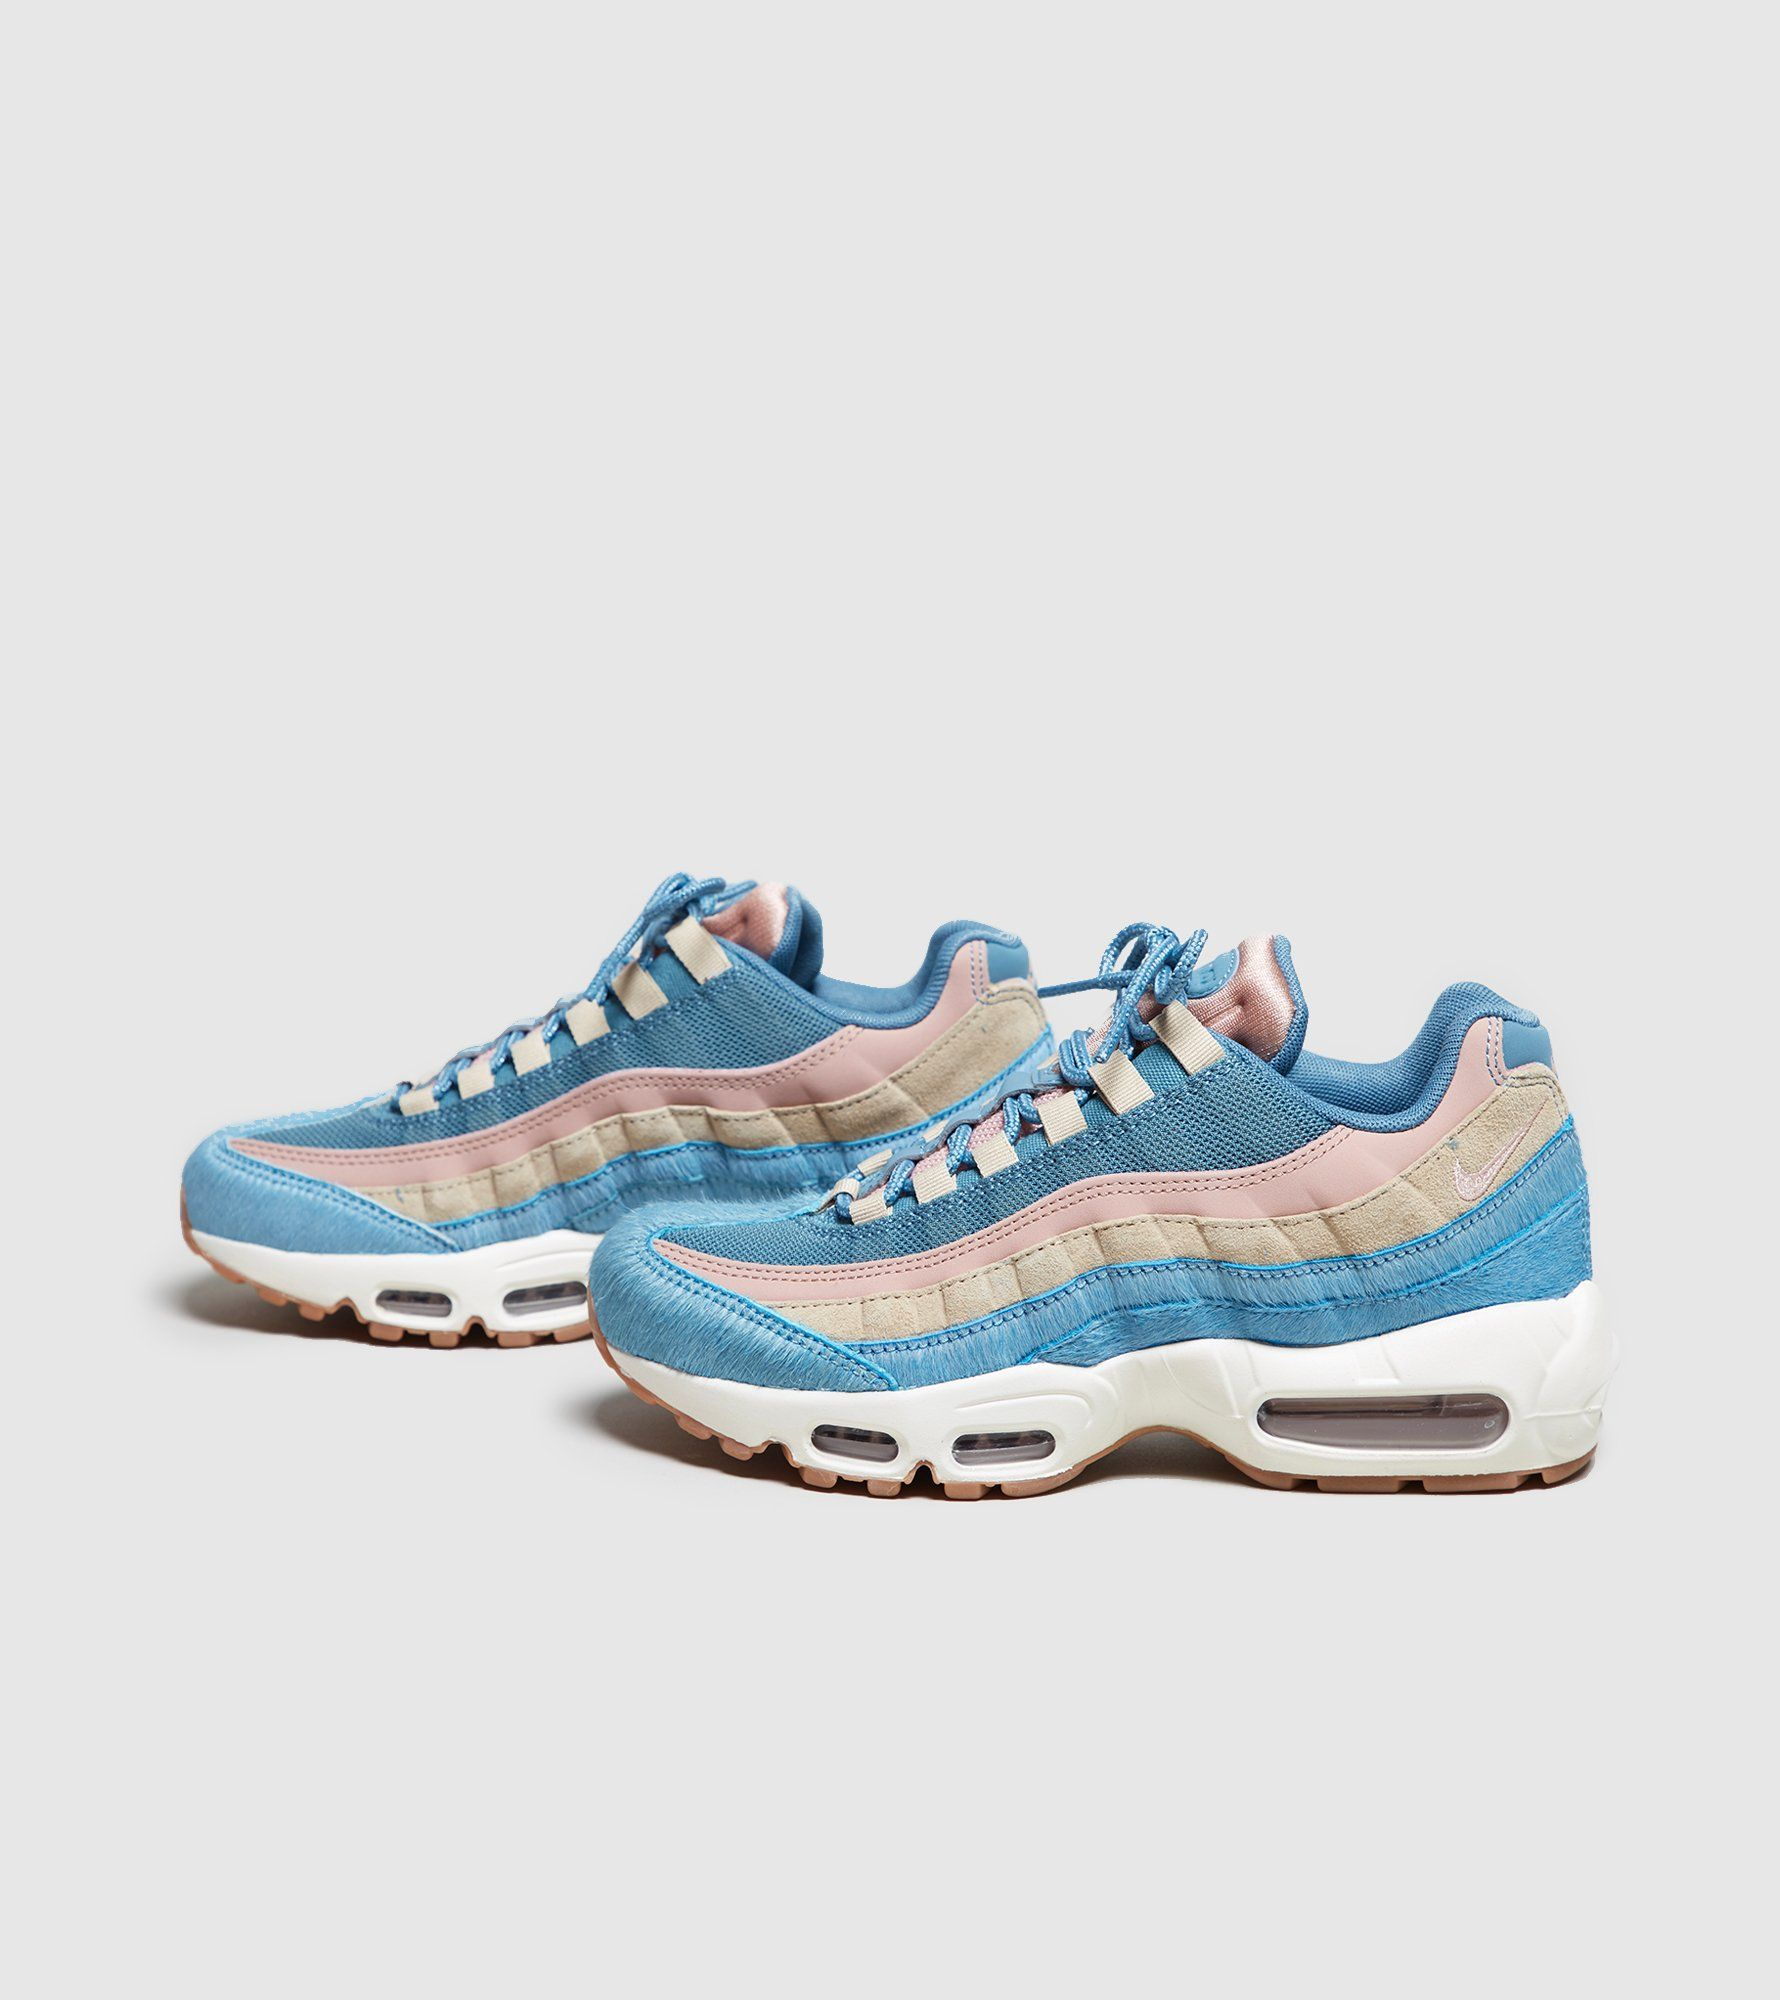 Nike Air Max 95 LX Frauen